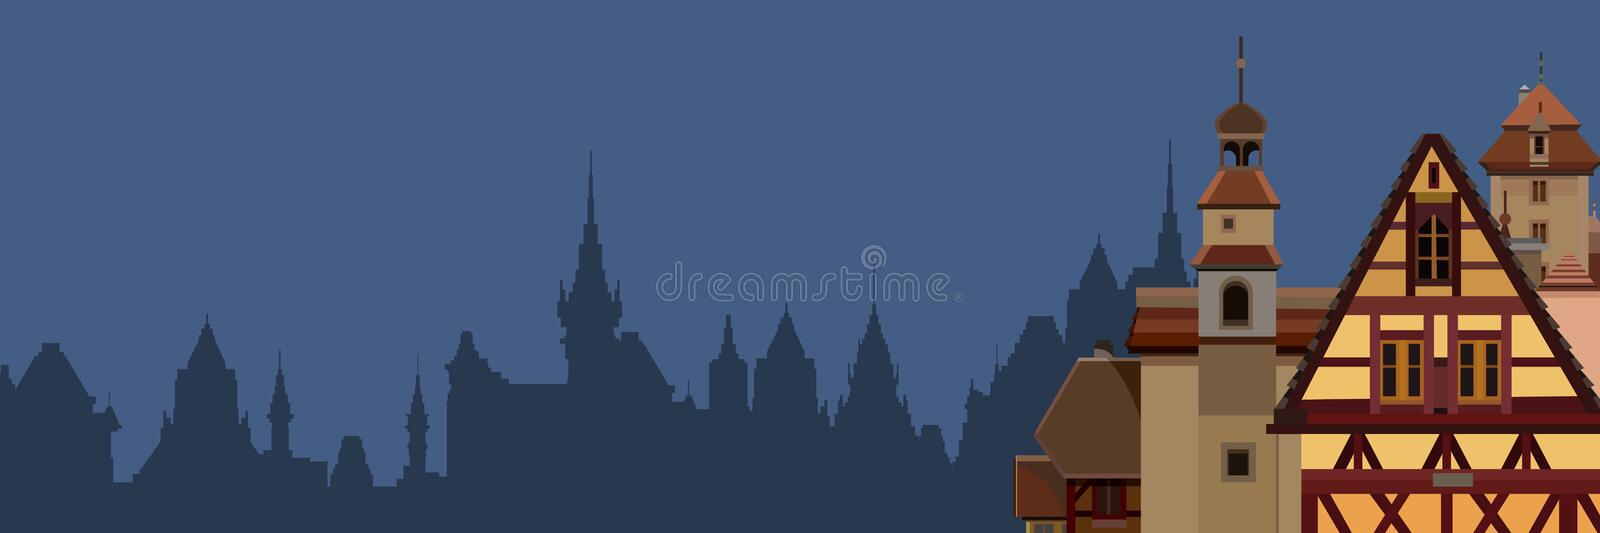 Background of a drawn silhouette of a European city with half timbered houses vector illustration